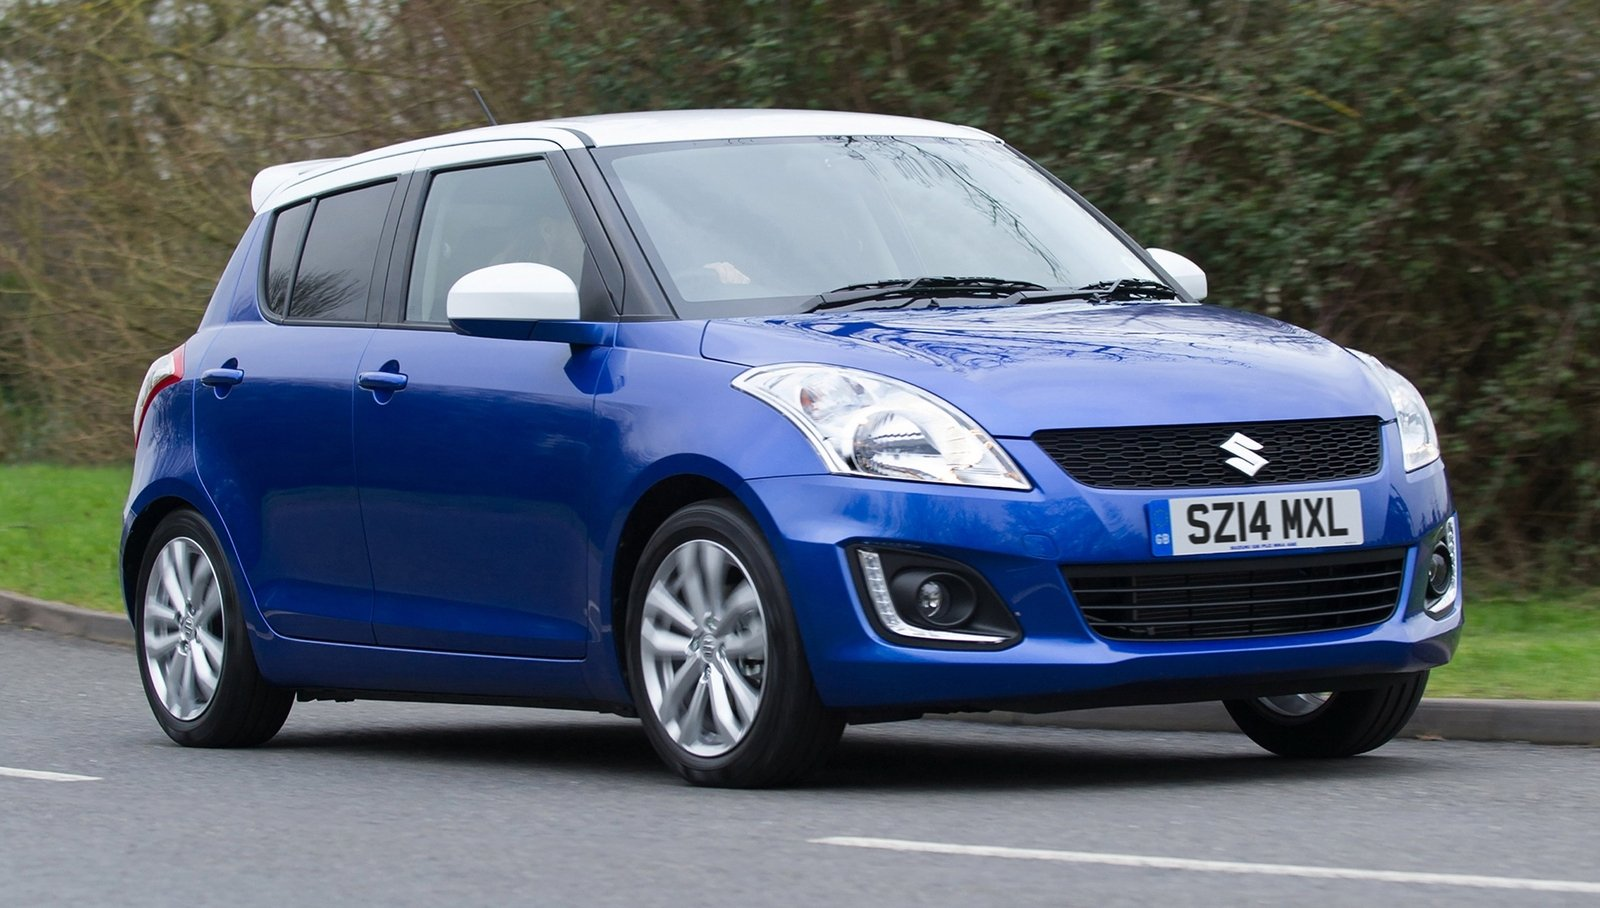 2014 suzuki swift szl special edition review top speed